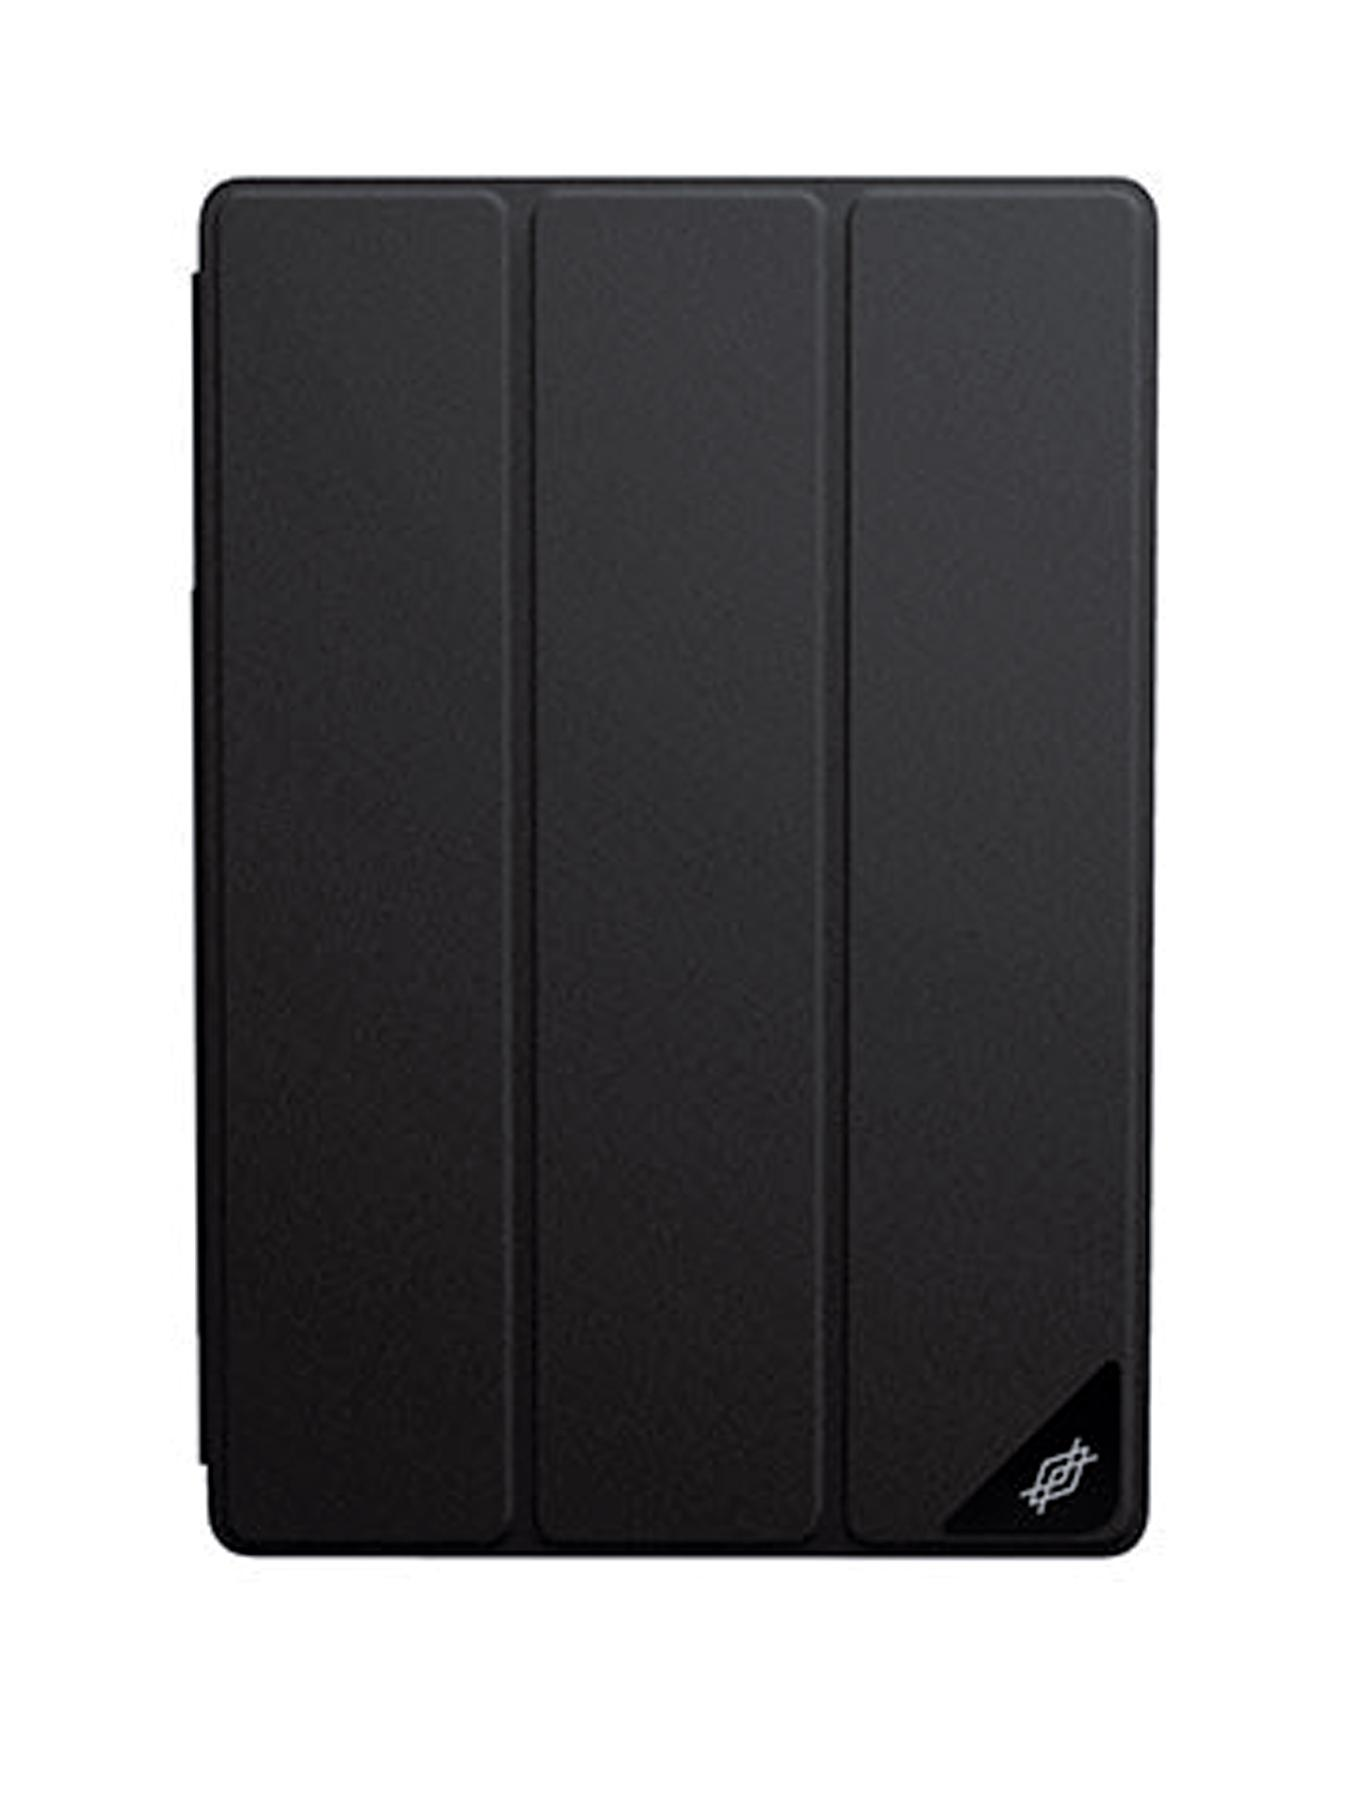 X Doria SmartJacket Case for iPad Mini - Black